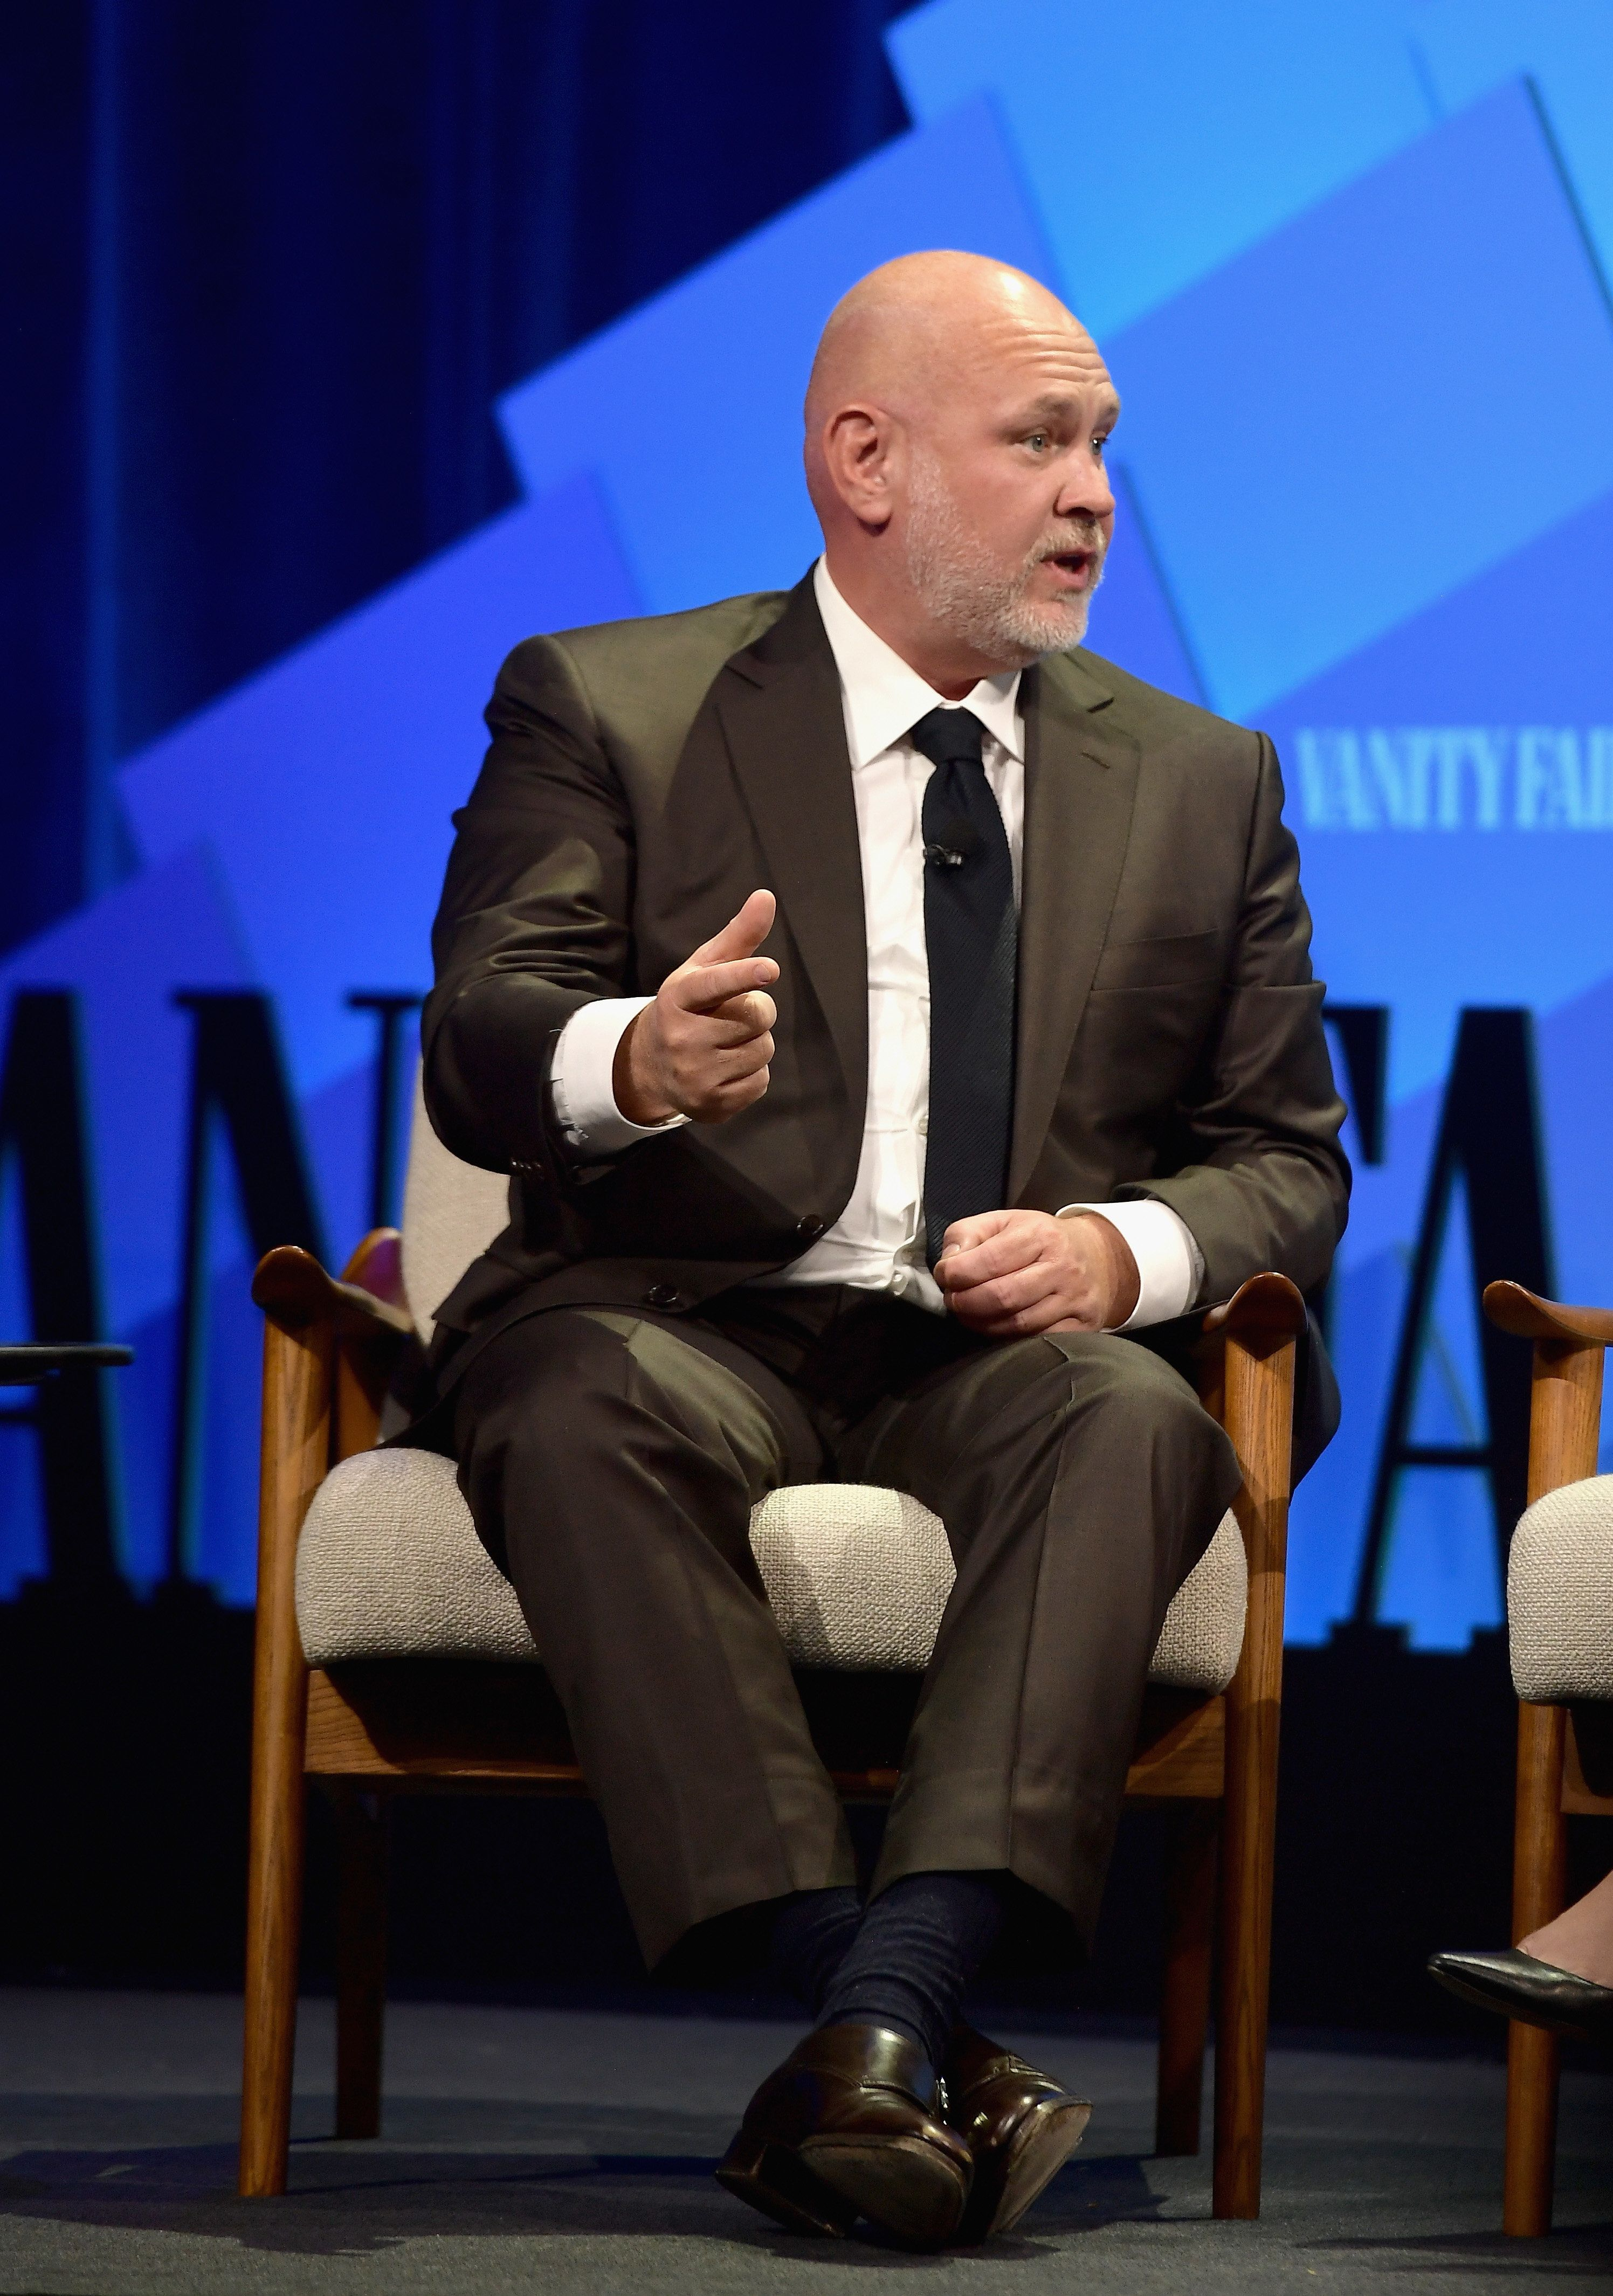 BEVERLY HILLS, CA - OCTOBER 09:  Political Analyst at NBC, Steve Schmidt speaks onstage at Day 1 of the Vanity Fair New Establishment Summit 2018 at The Wallis Annenberg Center for the Performing Arts on October 9, 2018 in Beverly Hills, California.  (Photo by Matt Winkelmeyer/Getty Images)